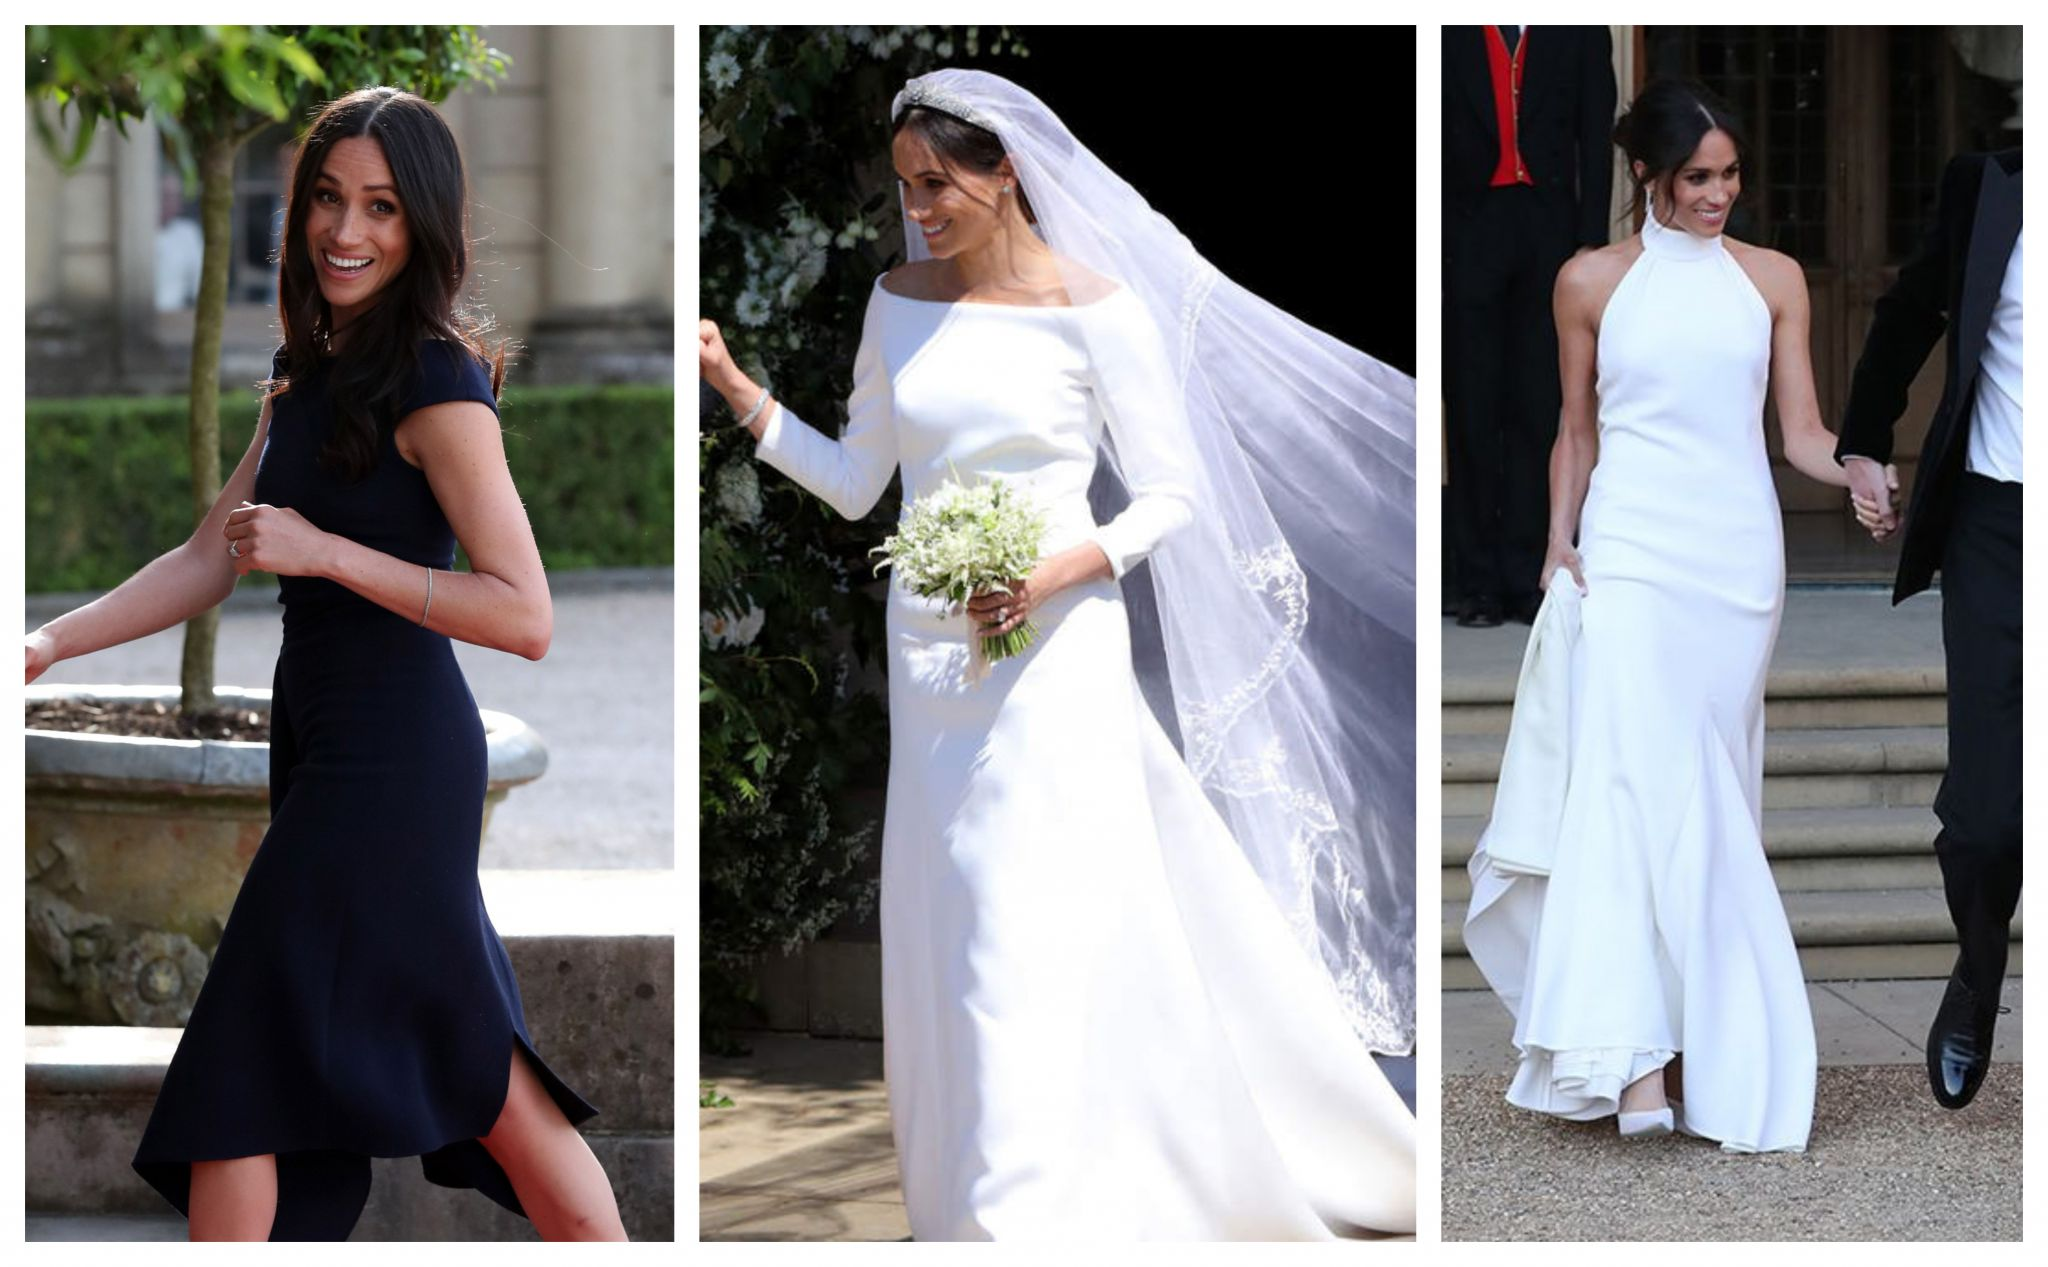 what Lizzy loves Meghan Markle dresses